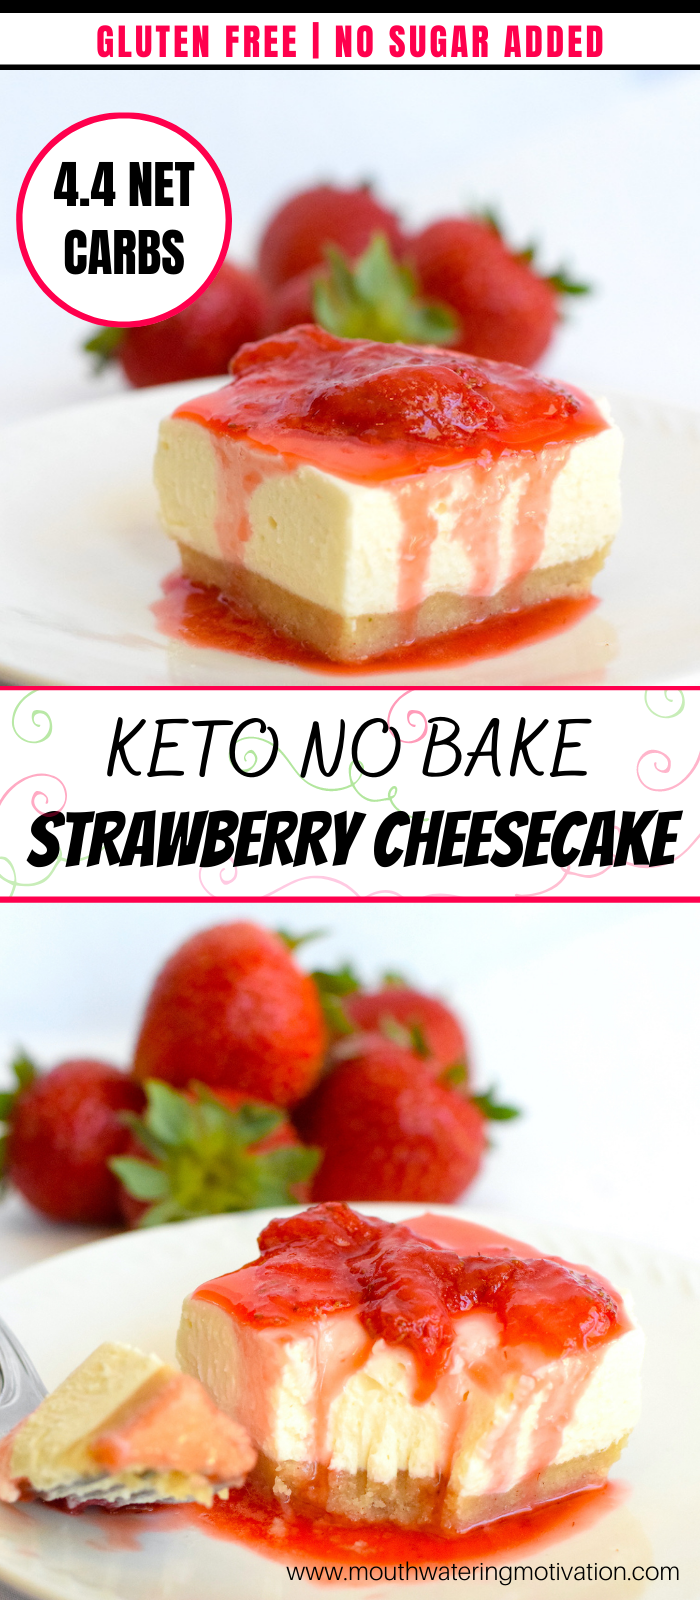 Keto no bake strawberry cheesecake 1